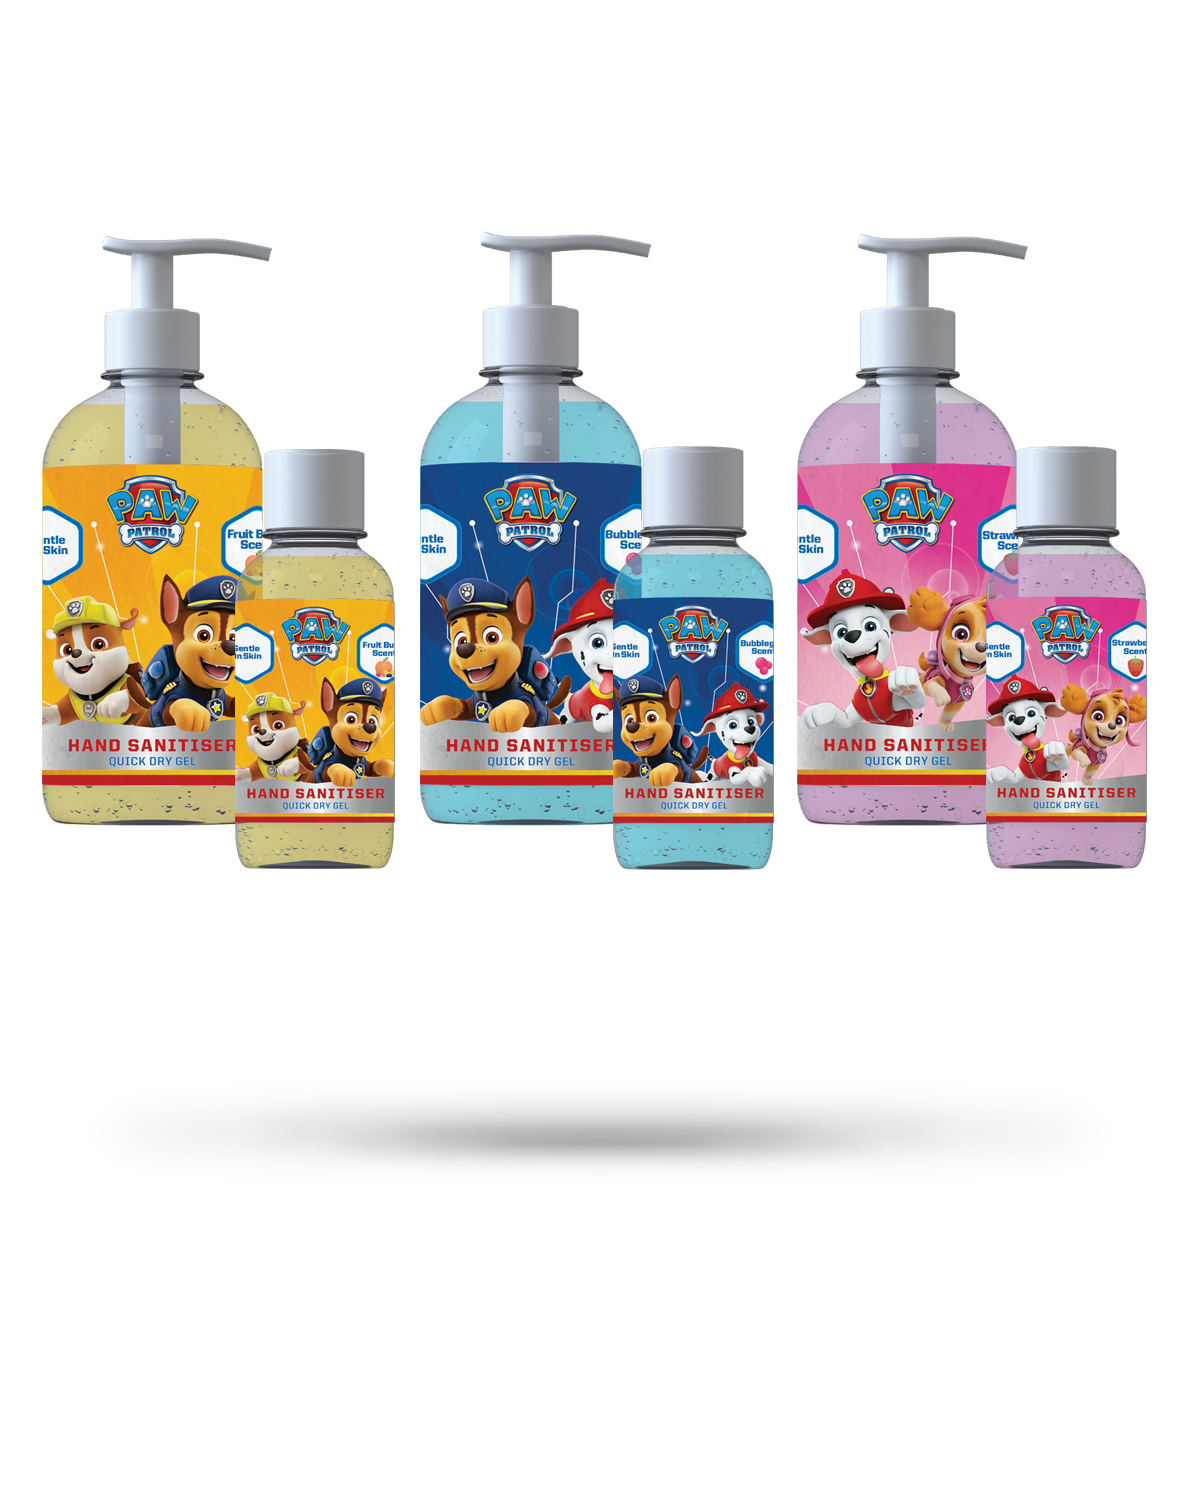 250ml + 50ml PAW Patrol bundle of Bubblegum, Fruit Burst & Strawberry scented hand sanitiser gel from Vital Life